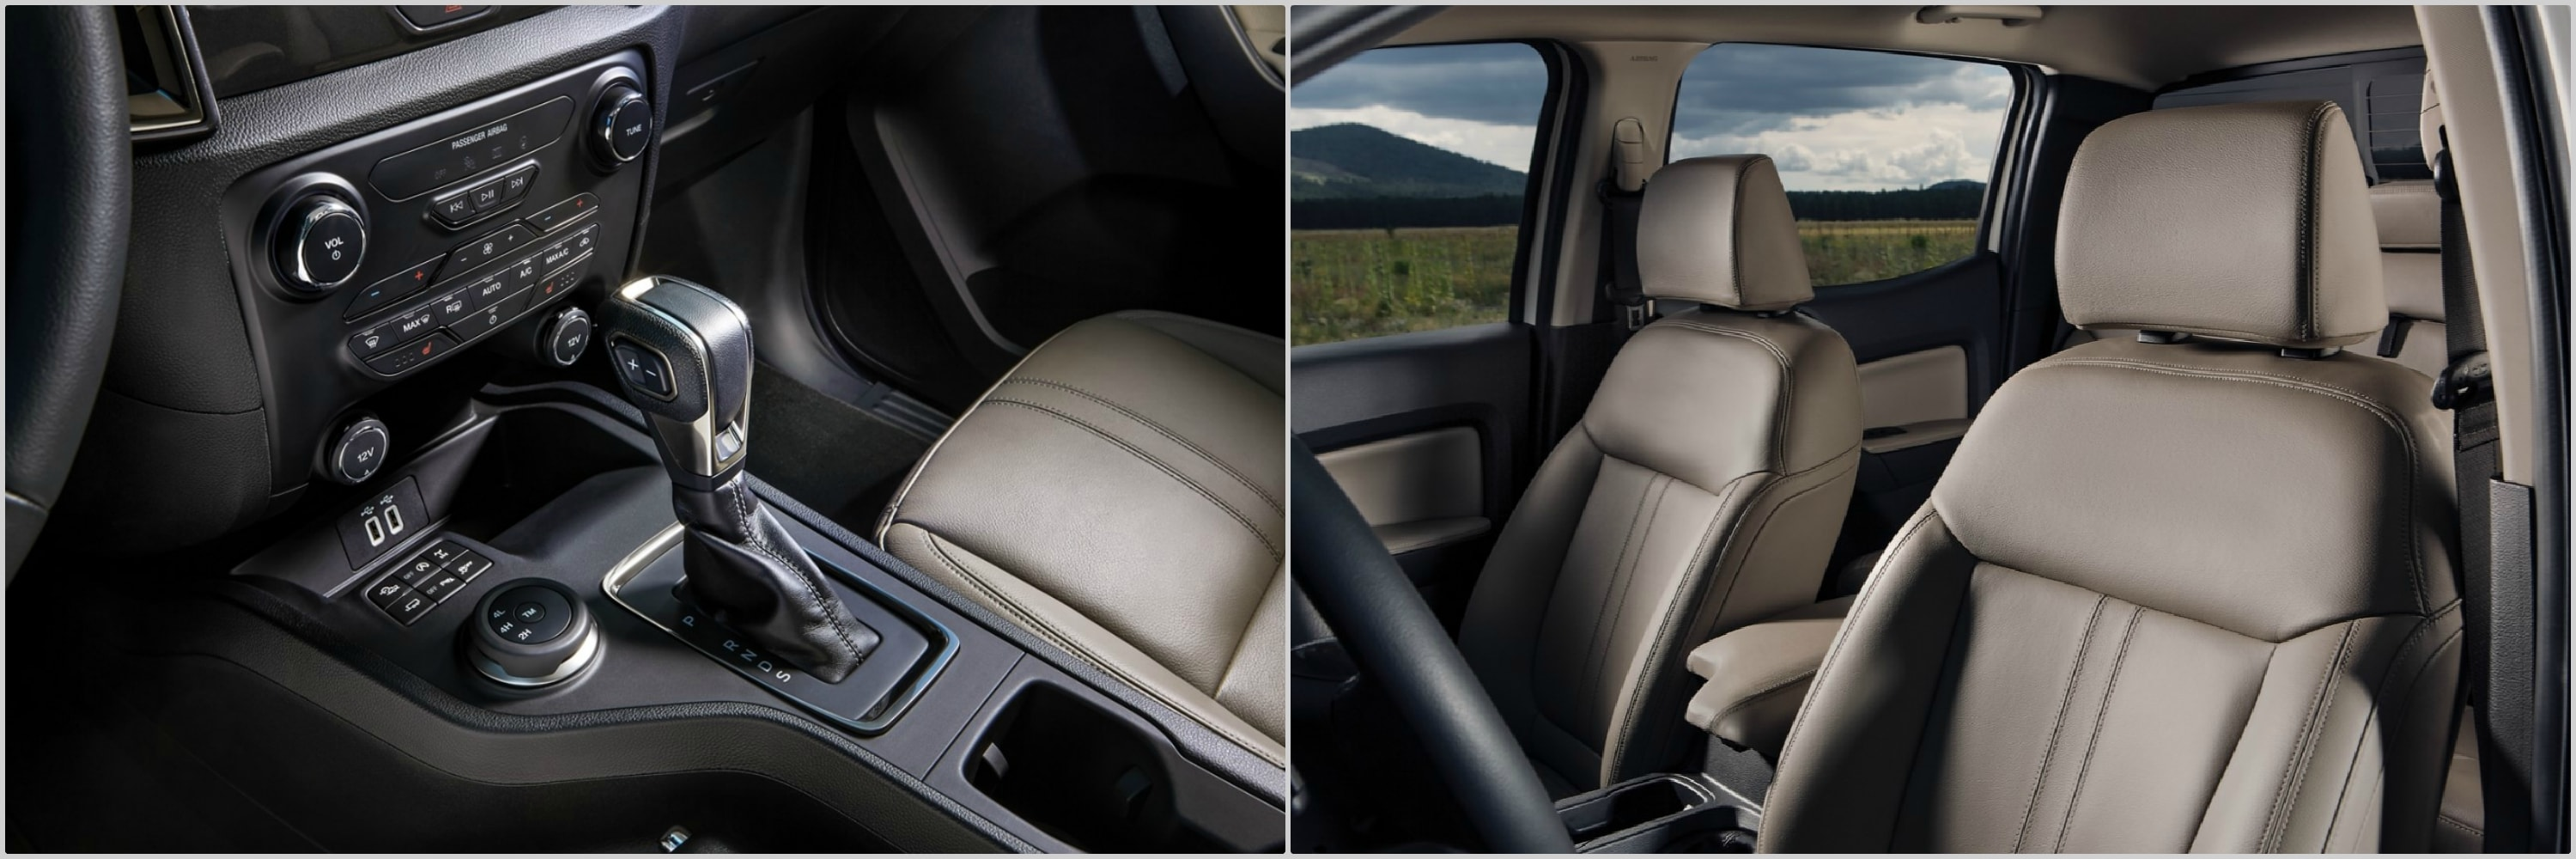 the interior seating and dashboard of a 2020 and a 2021 Ford Ranger